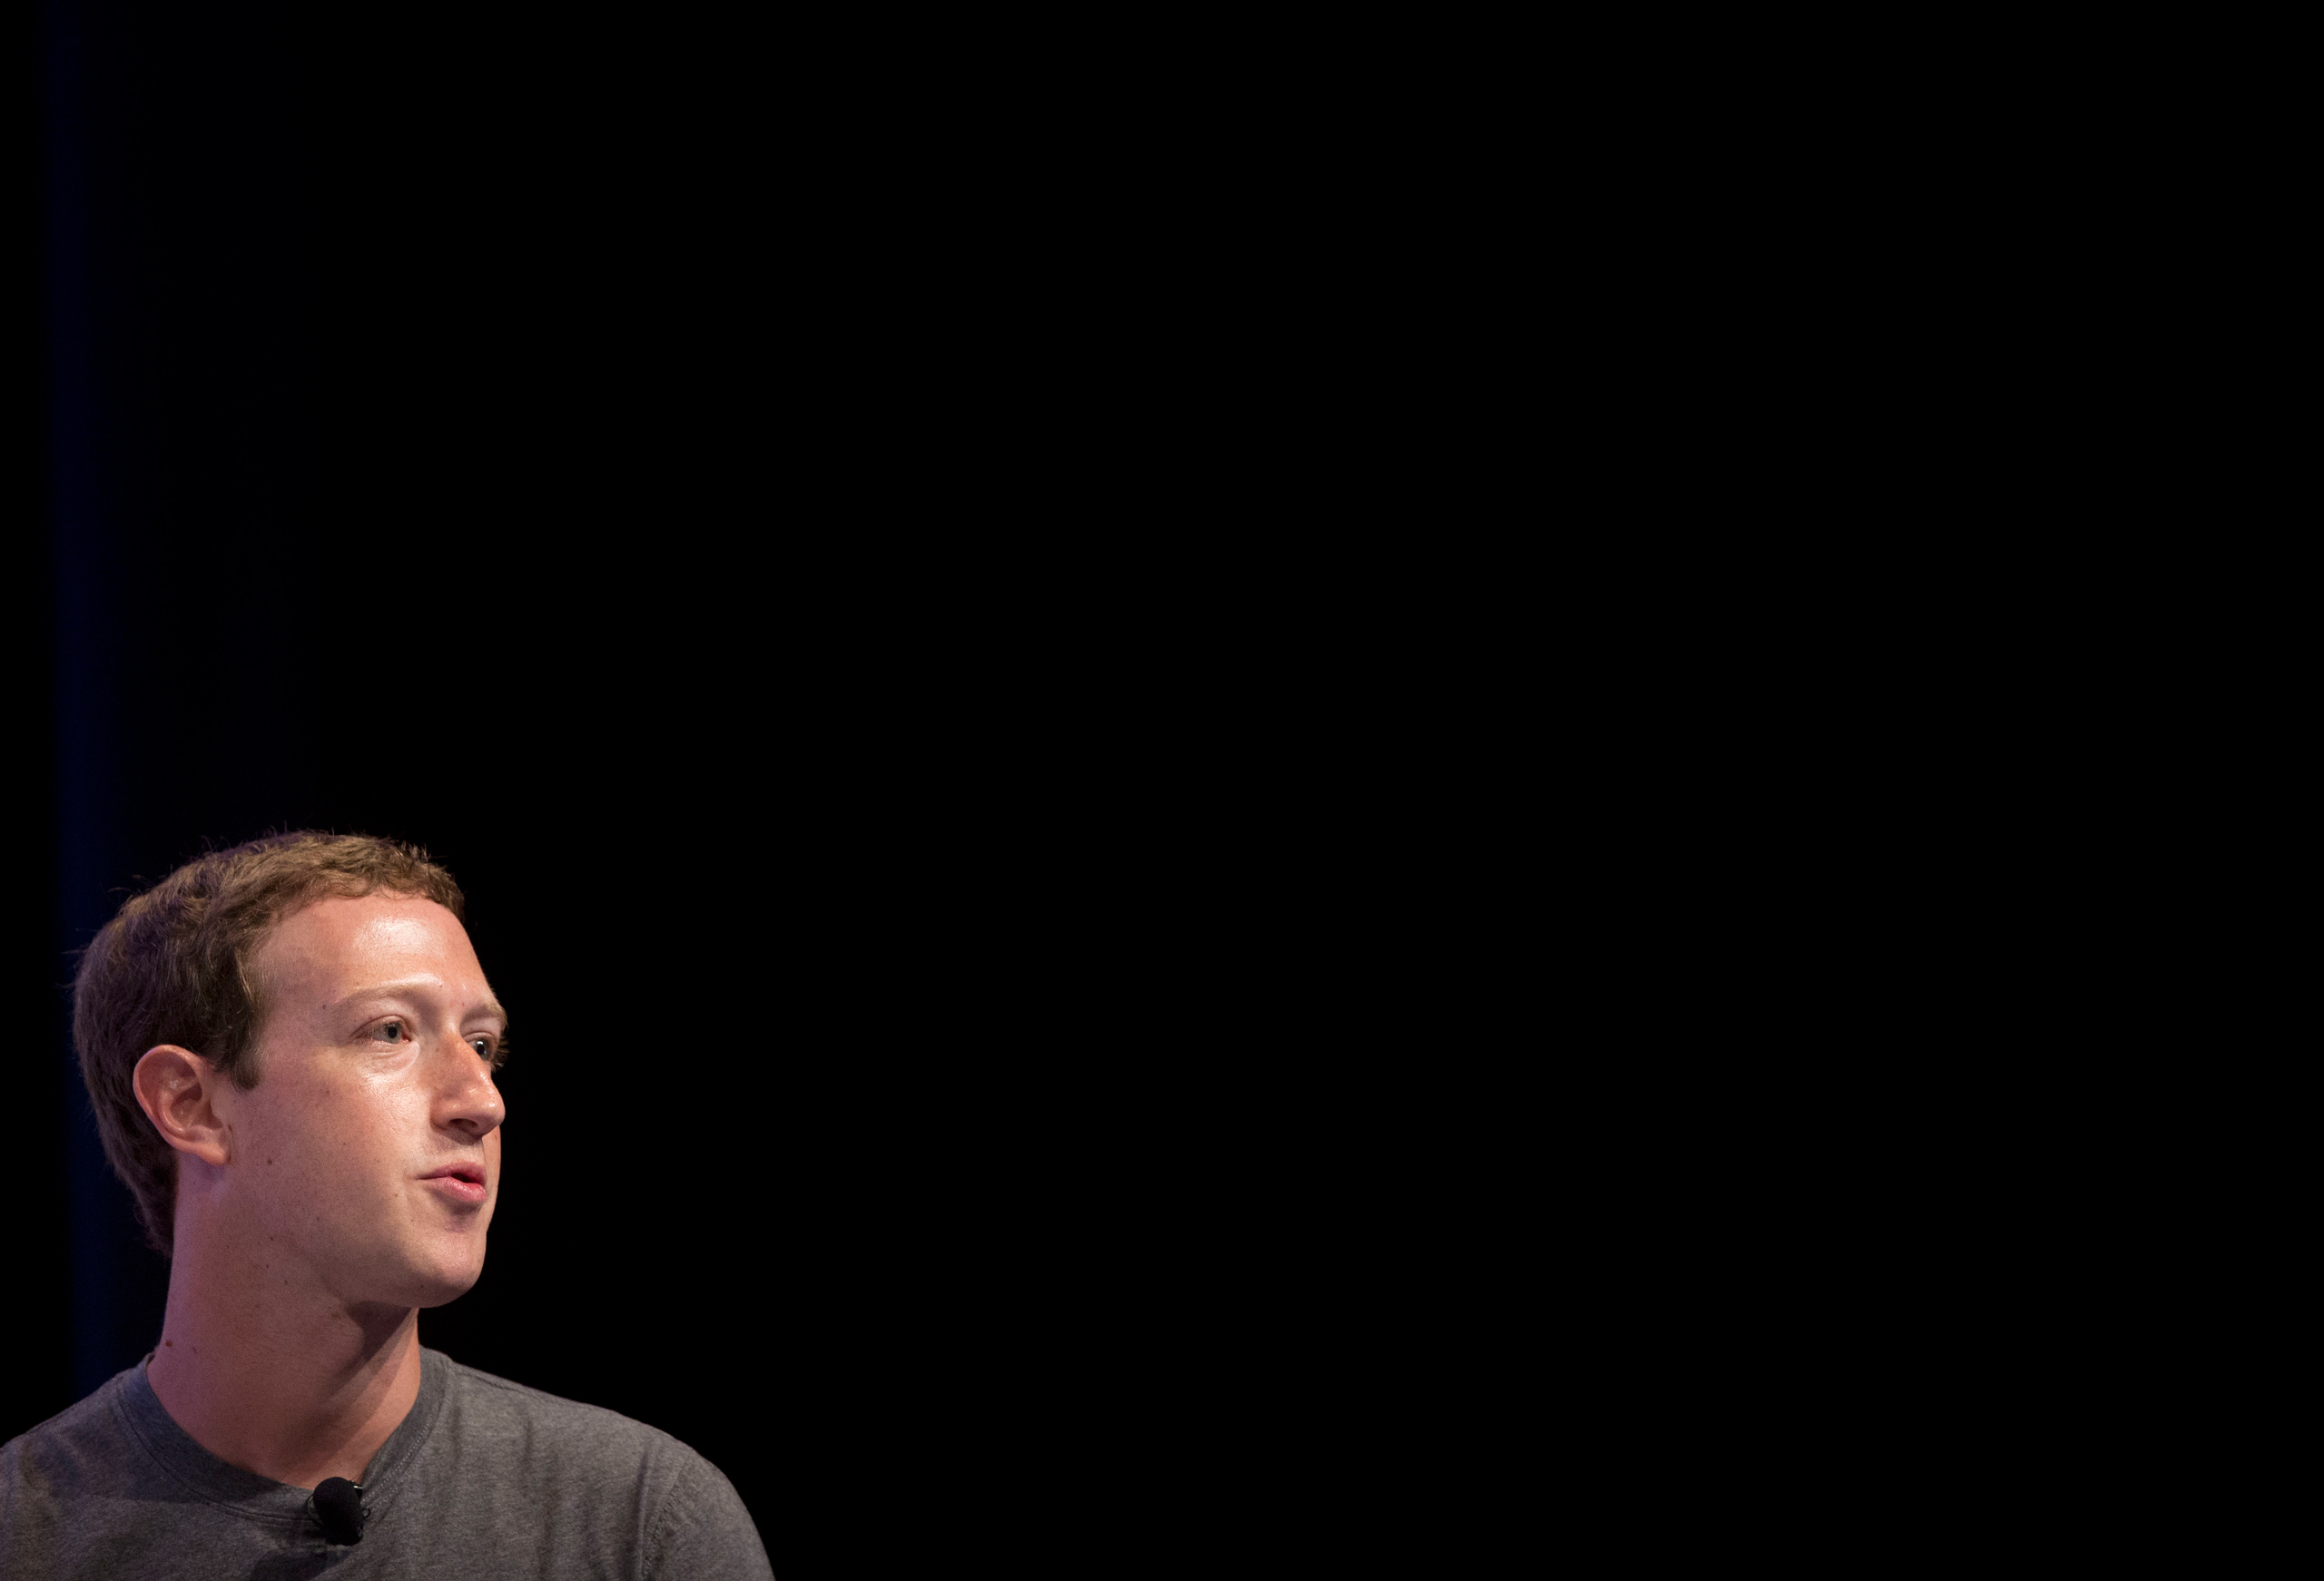 Facebook CEO Mark Zuckerberg at the Global Entrepreneur Summit at Stanford University in Stanford, Calif., on June 24, 2016.